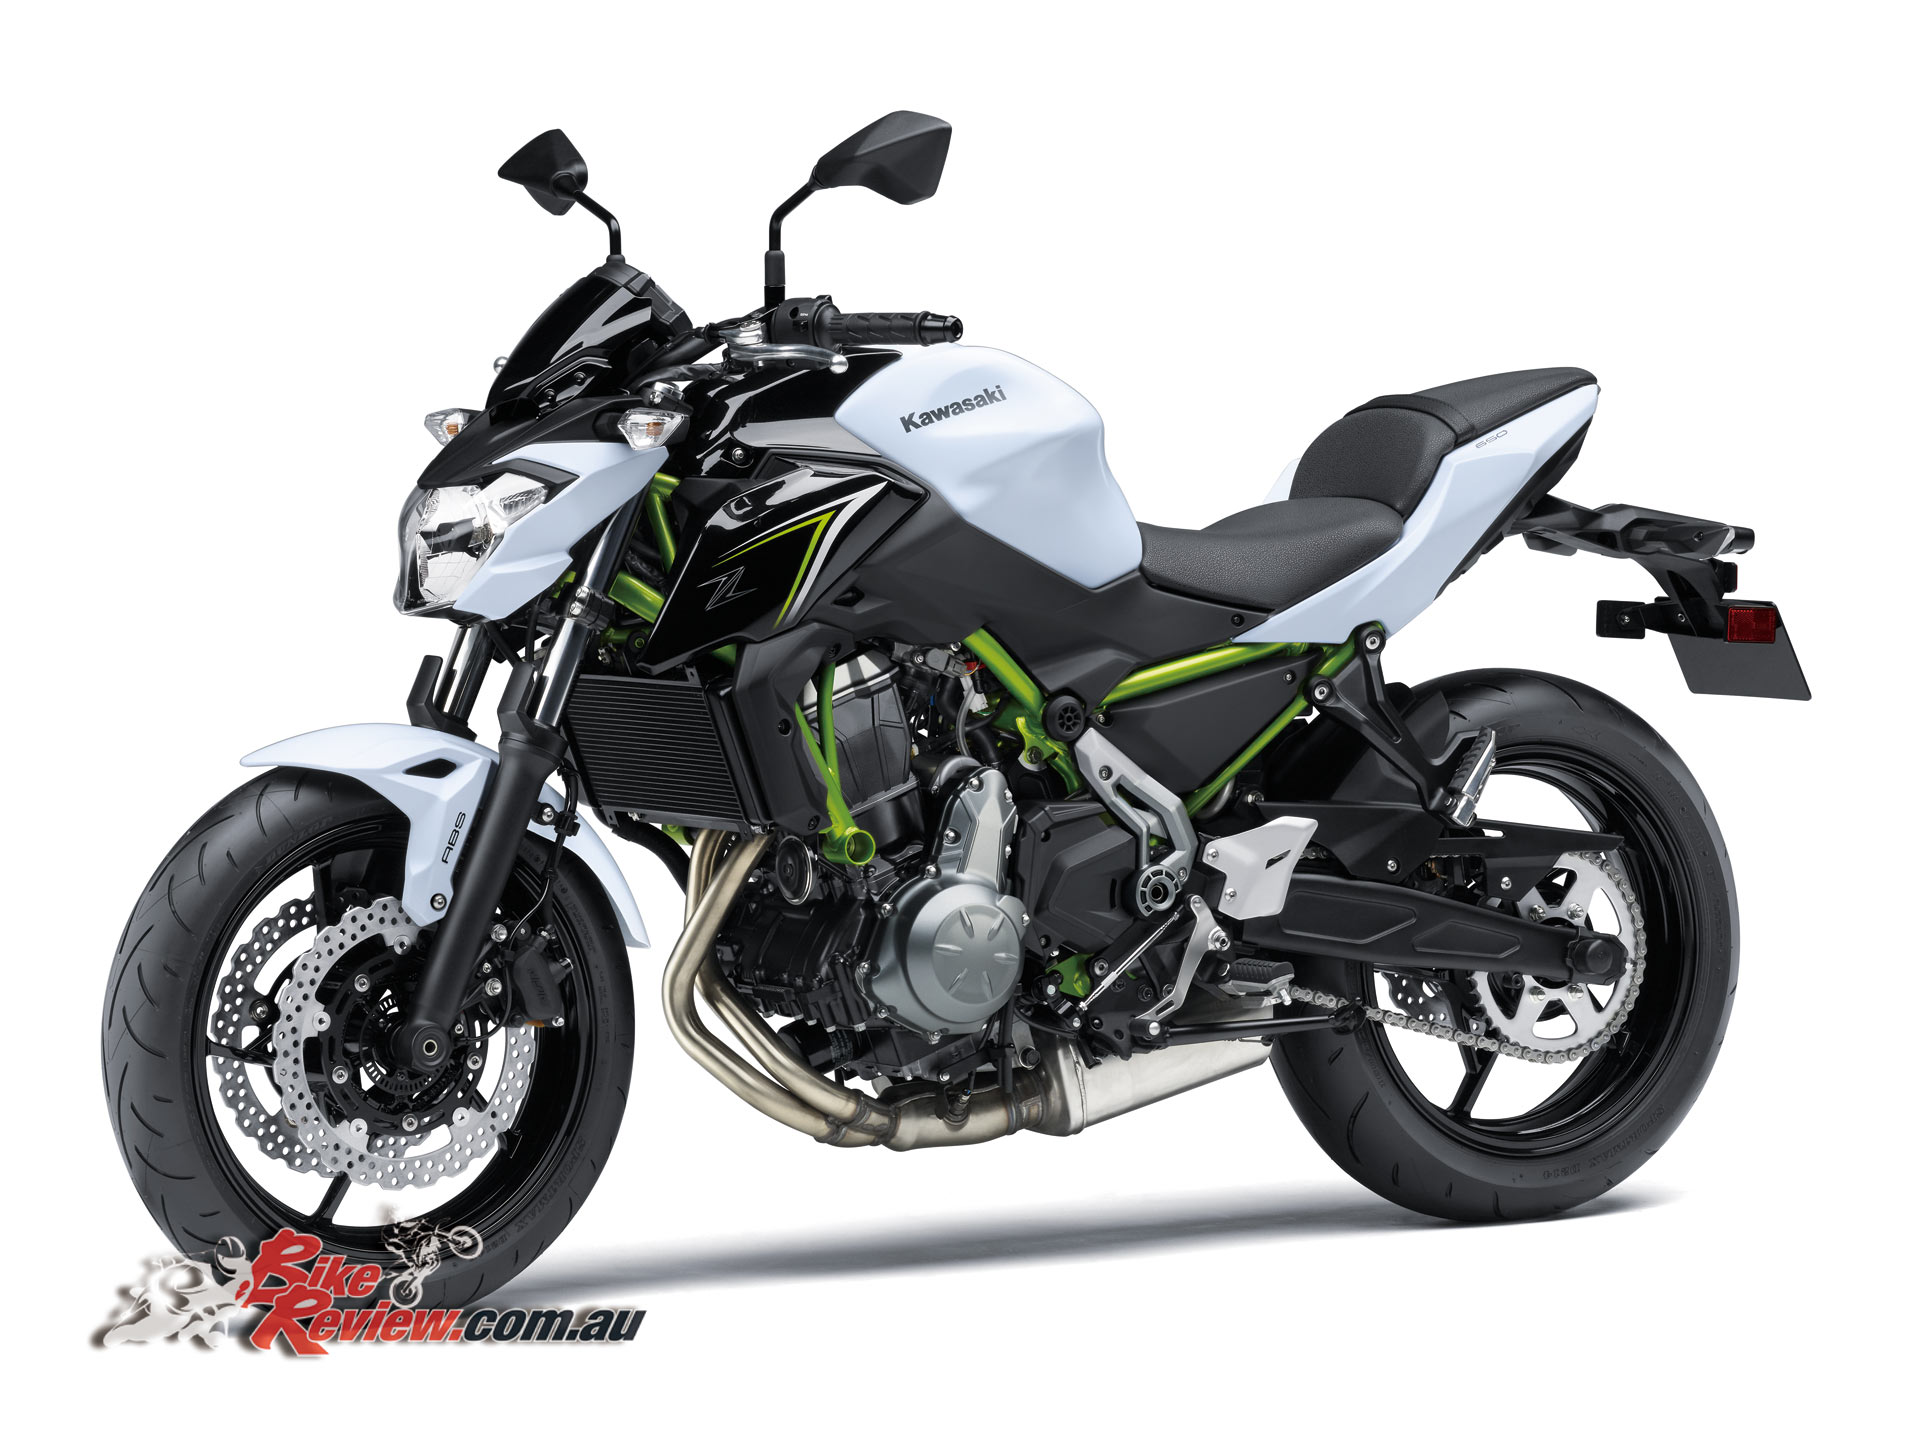 2017 kawasaki z650 revealed bike review. Black Bedroom Furniture Sets. Home Design Ideas